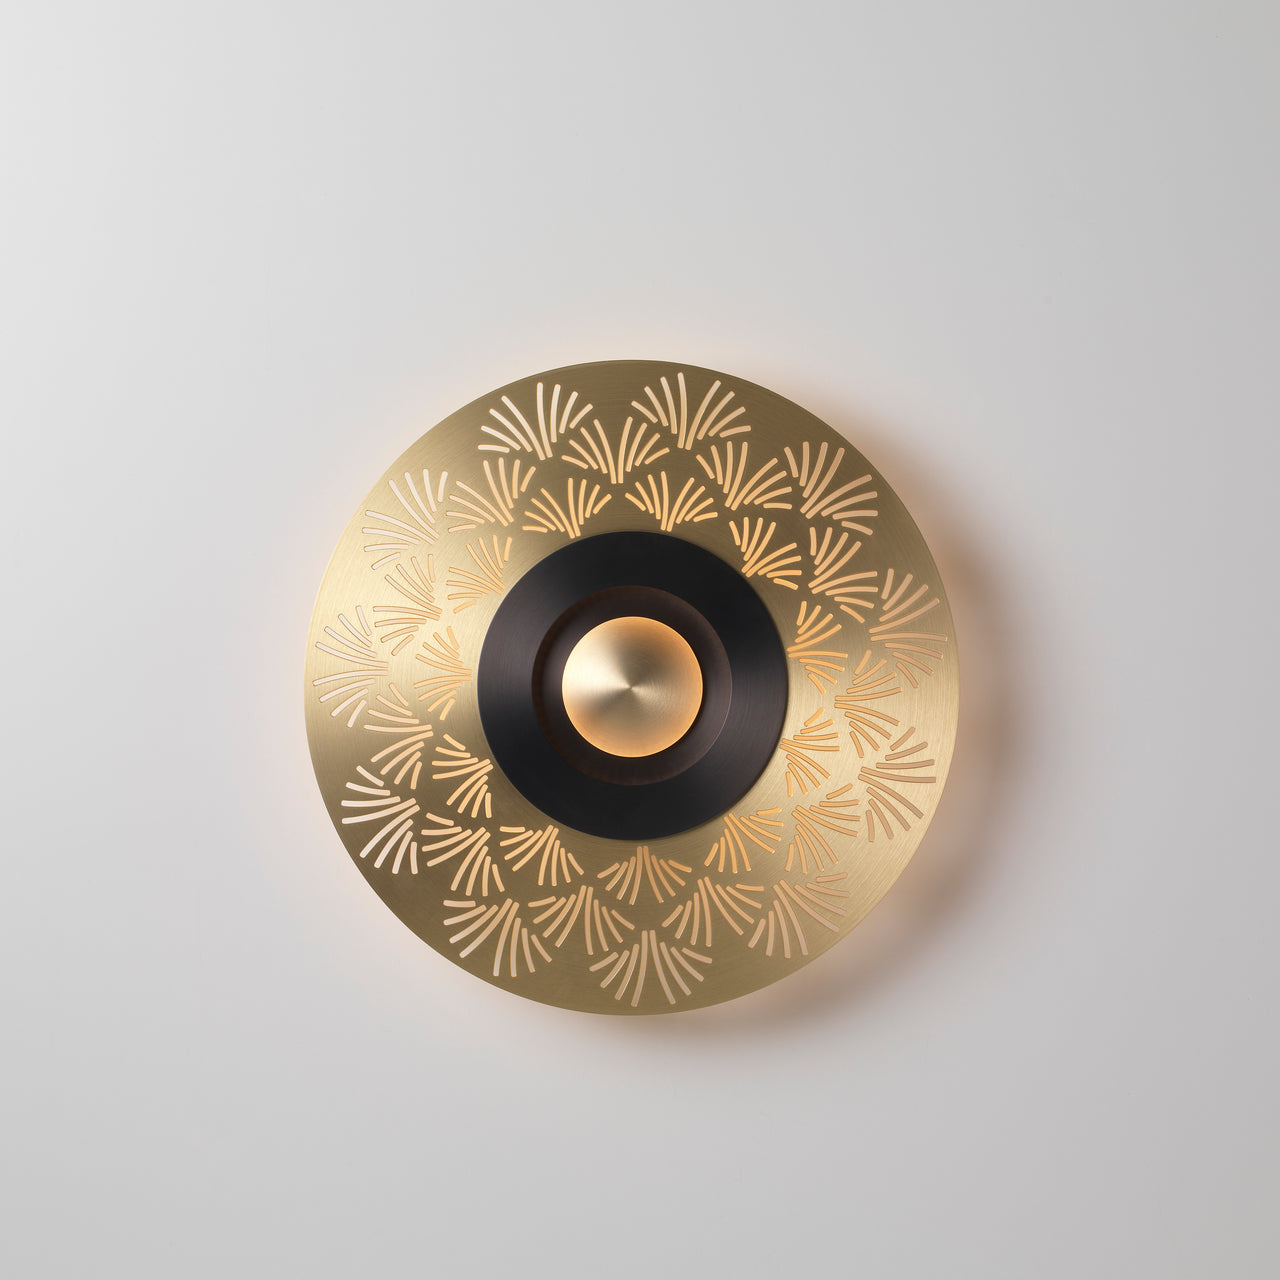 Earth Wall Light: Palm